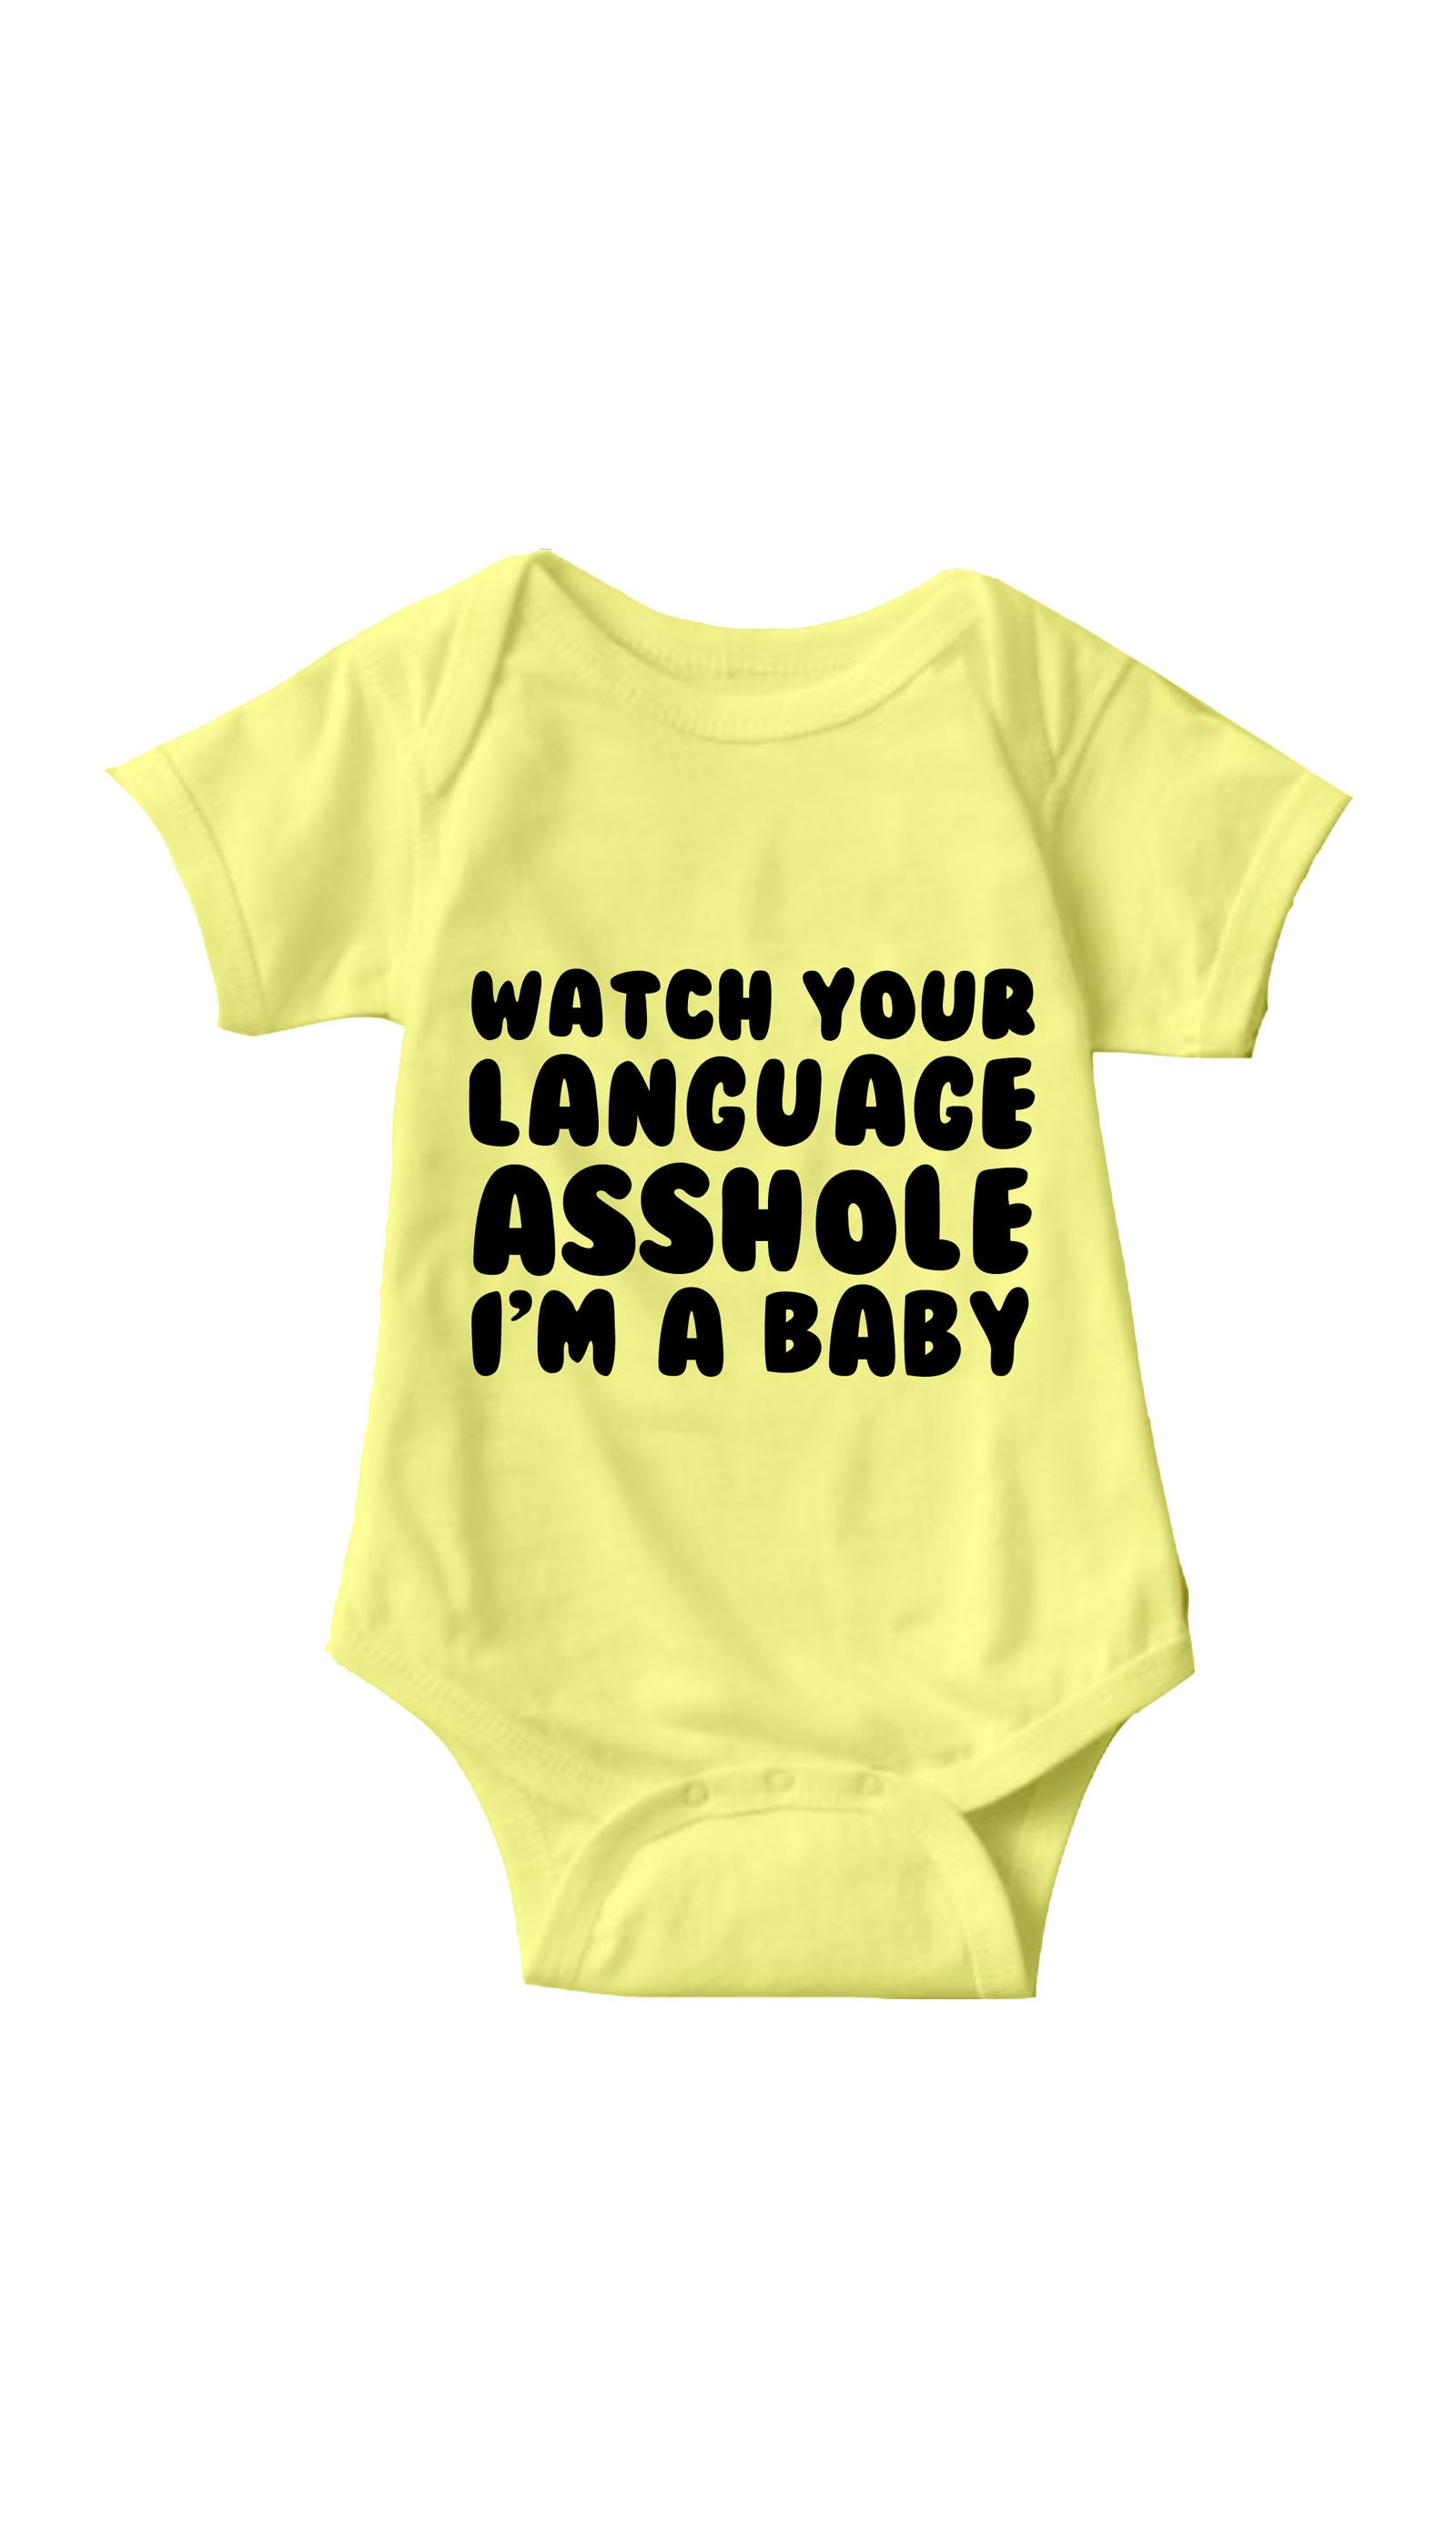 Watch Your Language Asshole Yellow Infant Onesie | Sarcastic ME